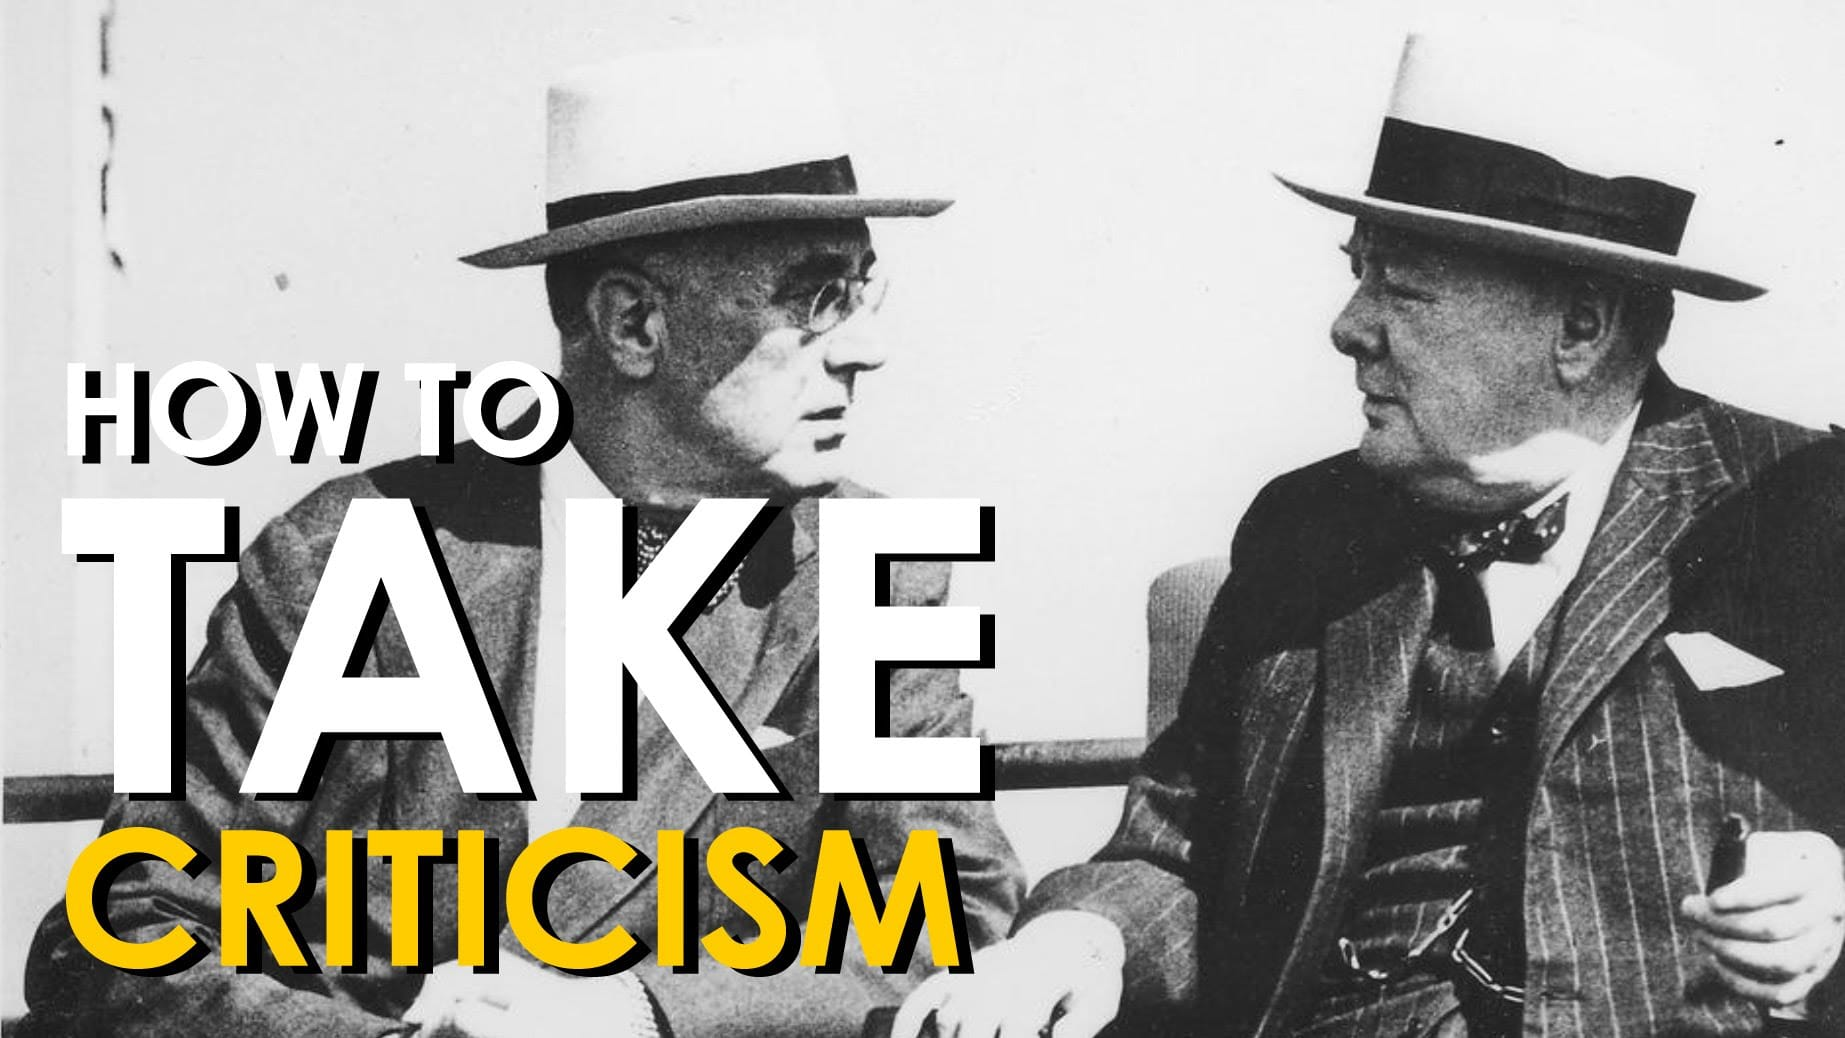 How to Accept Criticism From Others | The Art of Manliness